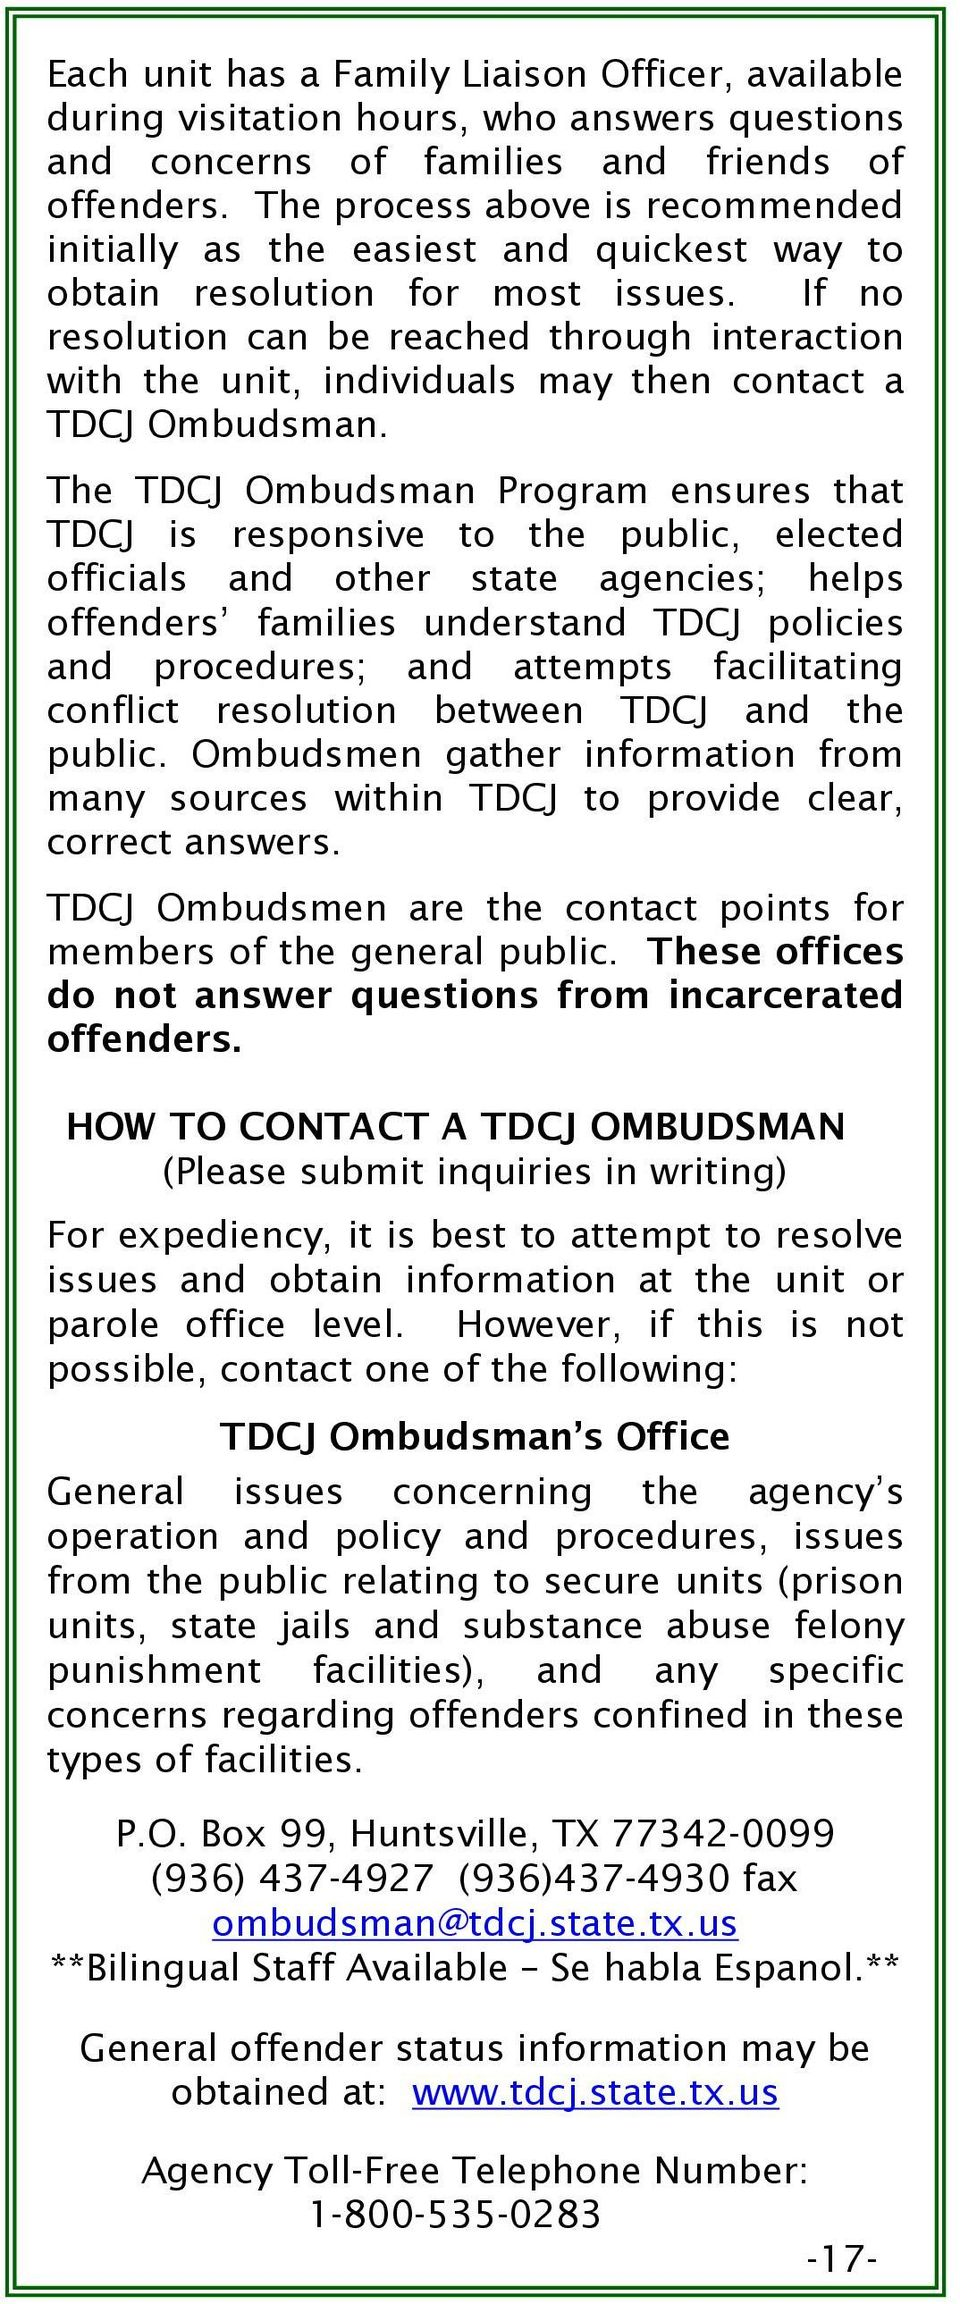 If no resolution can be reached through interaction with the unit, individuals may then contact a TDCJ Ombudsman.